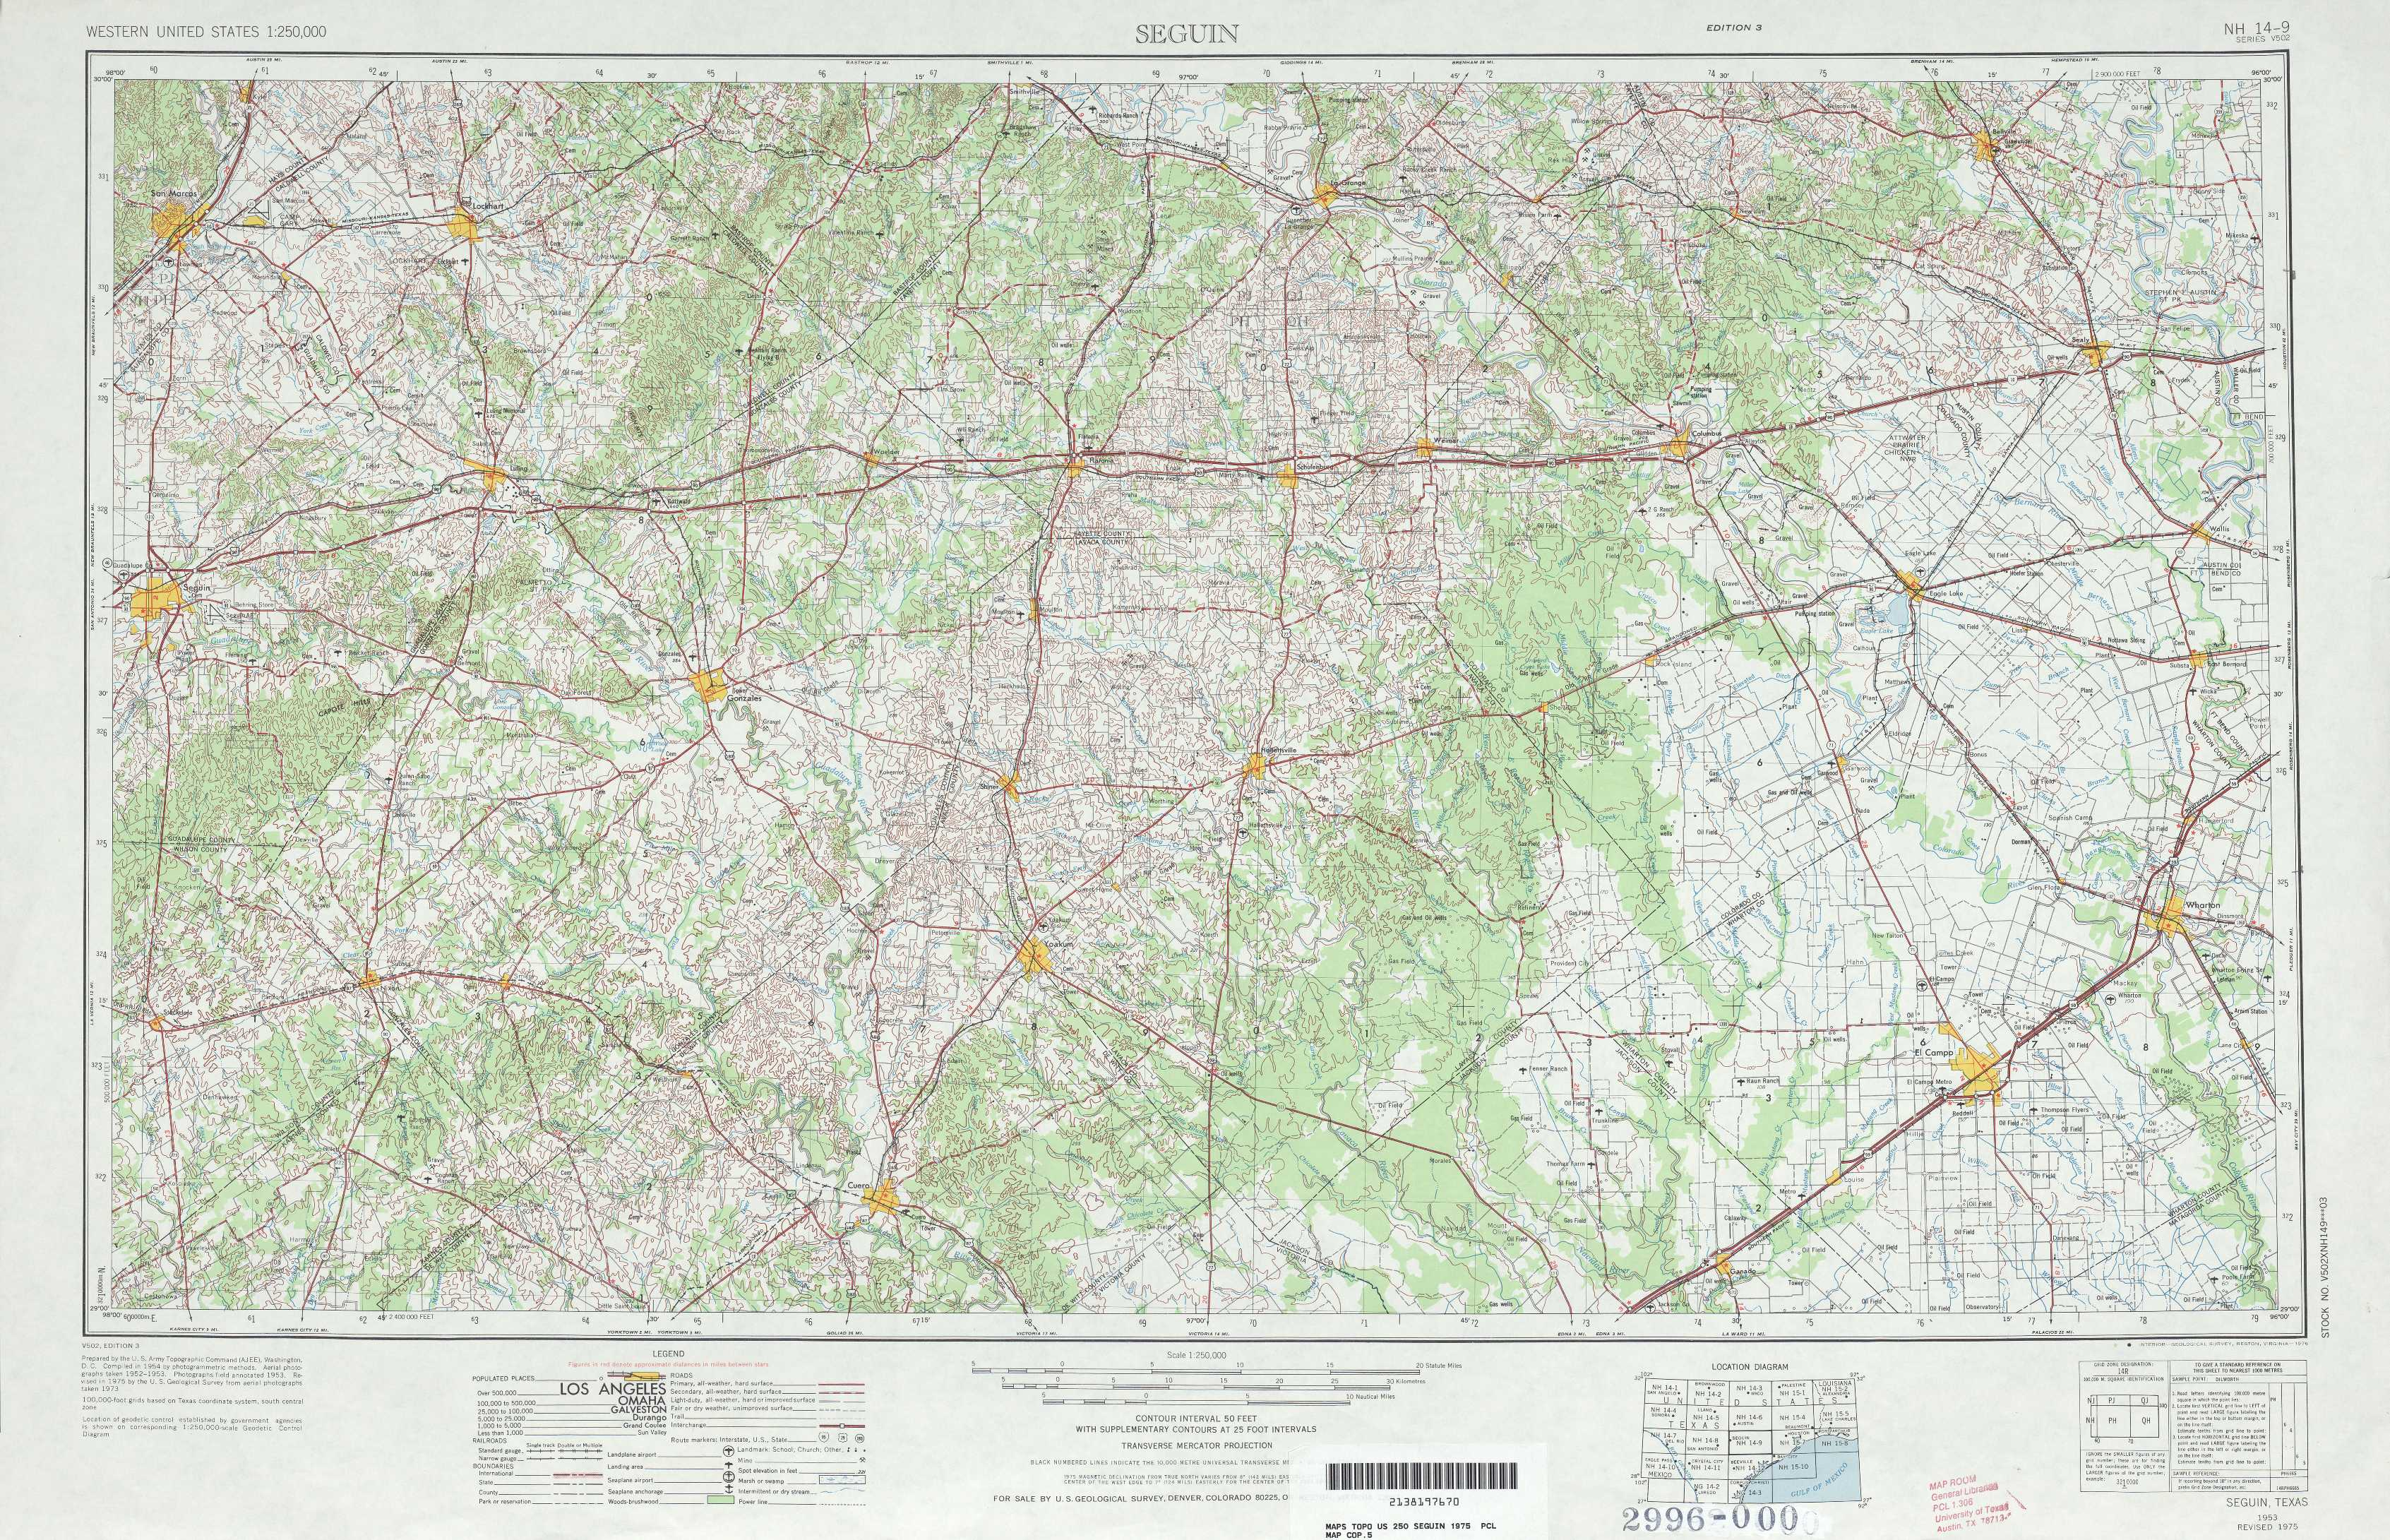 tennessee political map with 29096a1 on Brimstone Trail Map as well The Appalachia Map Yet Again also Index furthermore Kettle Moraine Wisconsin Map moreover Stock Vector A Full Color Map Of The United States Of America With The State Names Called Out.